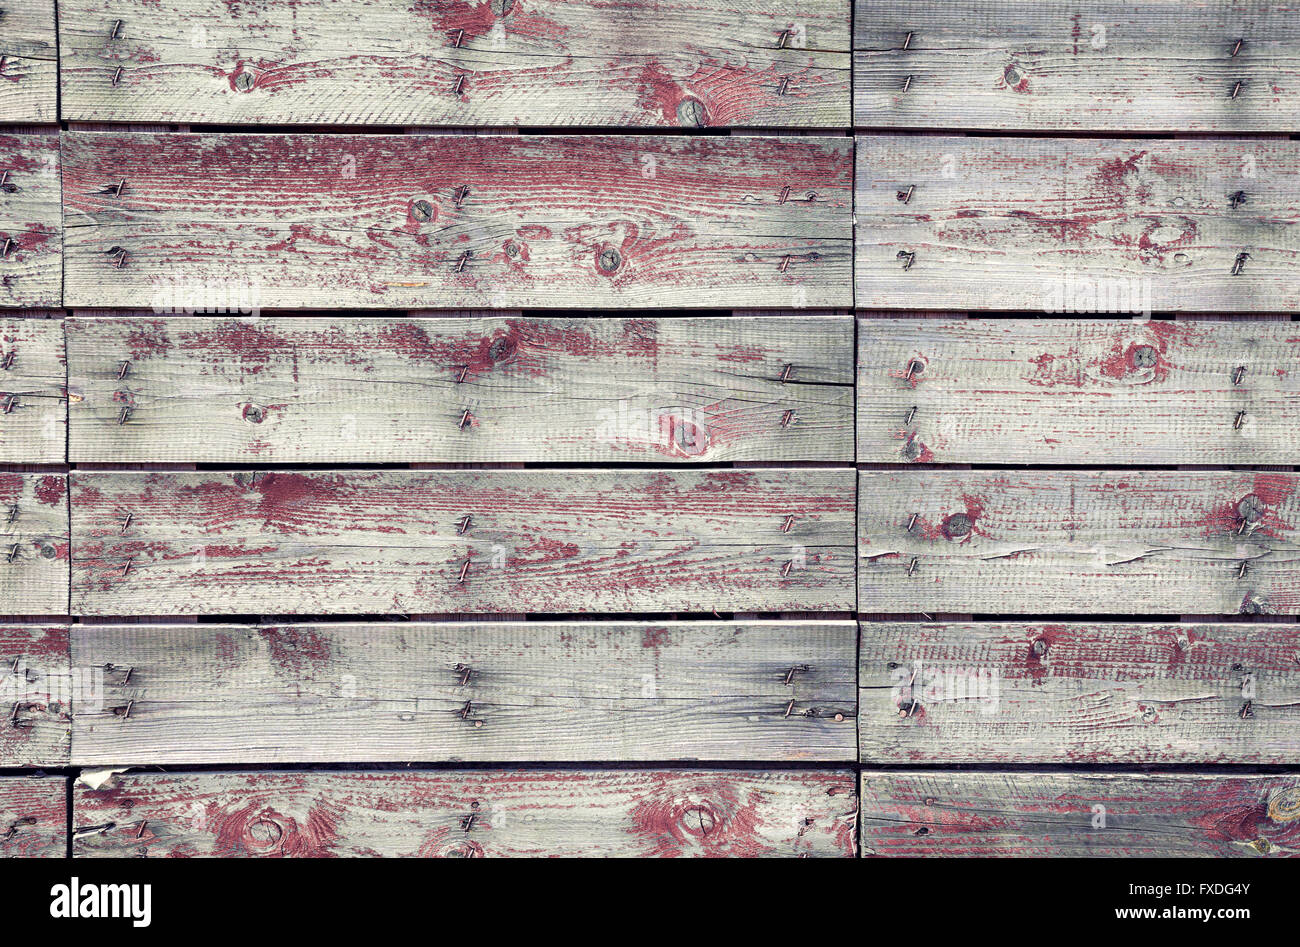 Old wooden planks texture with weathered red paint - Stock Image